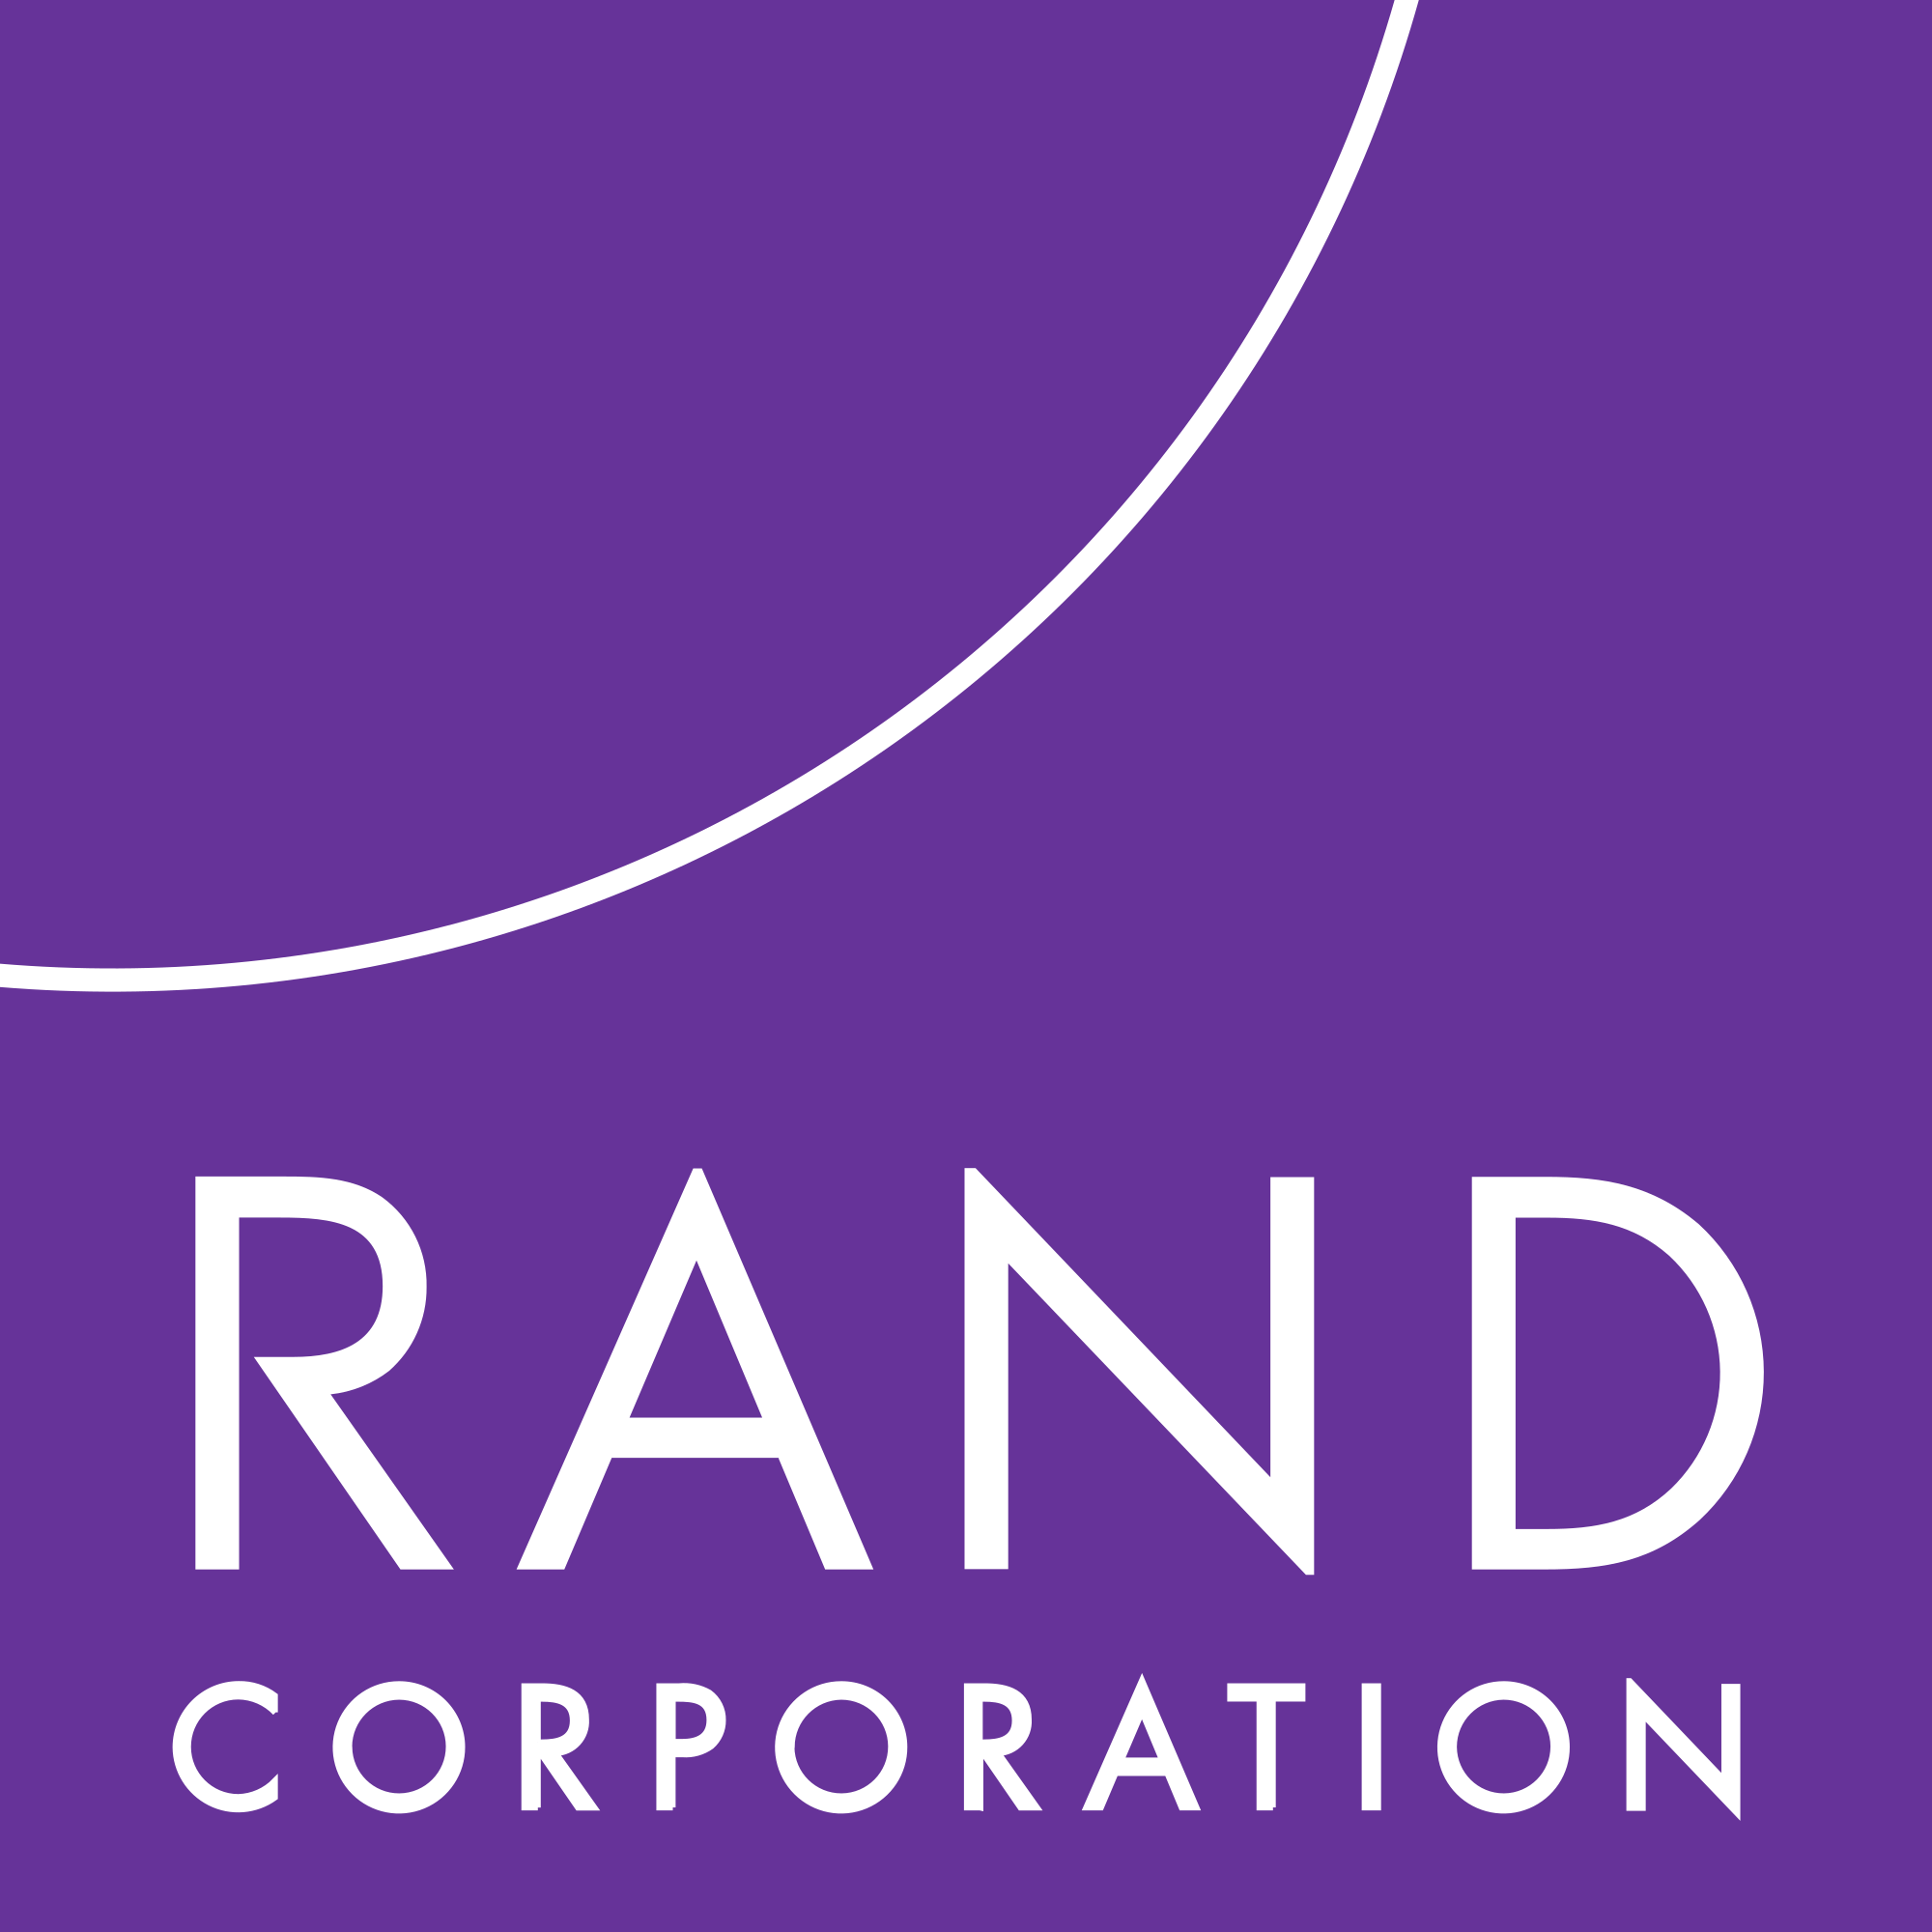 RAND_logo-corp.png